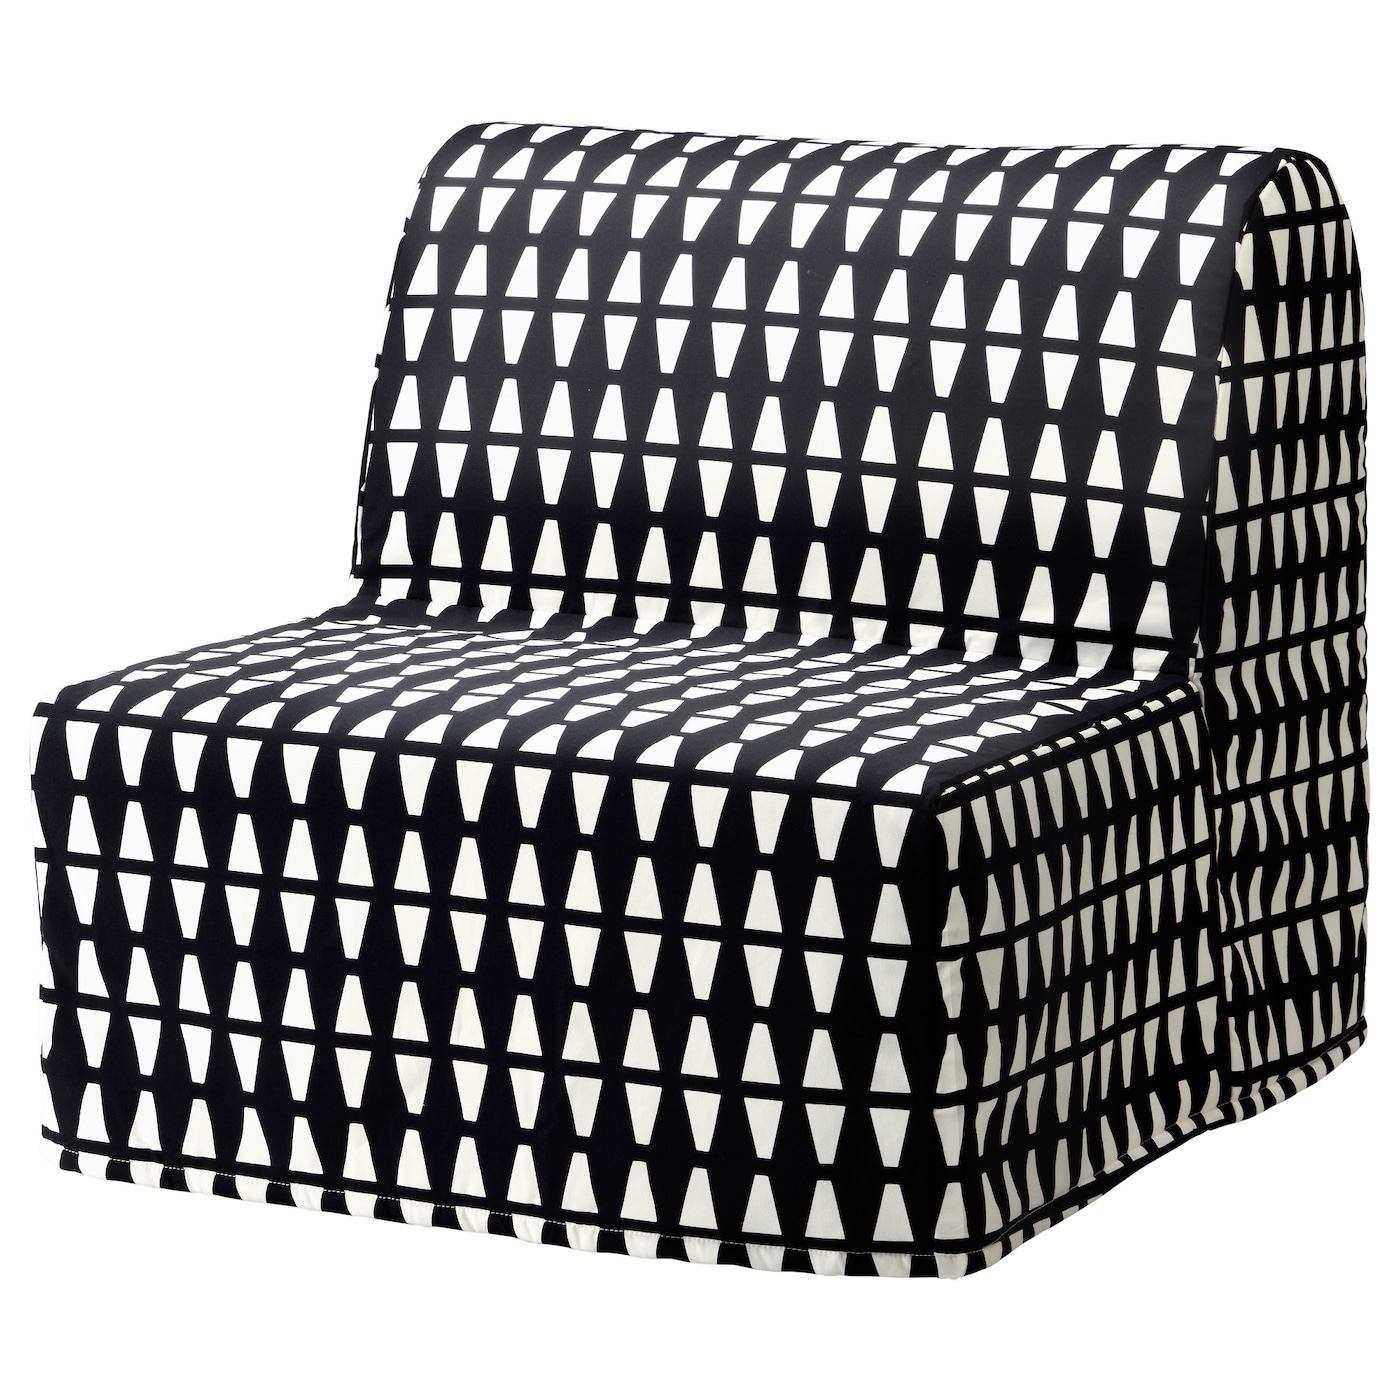 IKEA LYCKSELE HÅVET Chair Bed Cover Made Of Durable Cotton With A Geometric  Pattern.